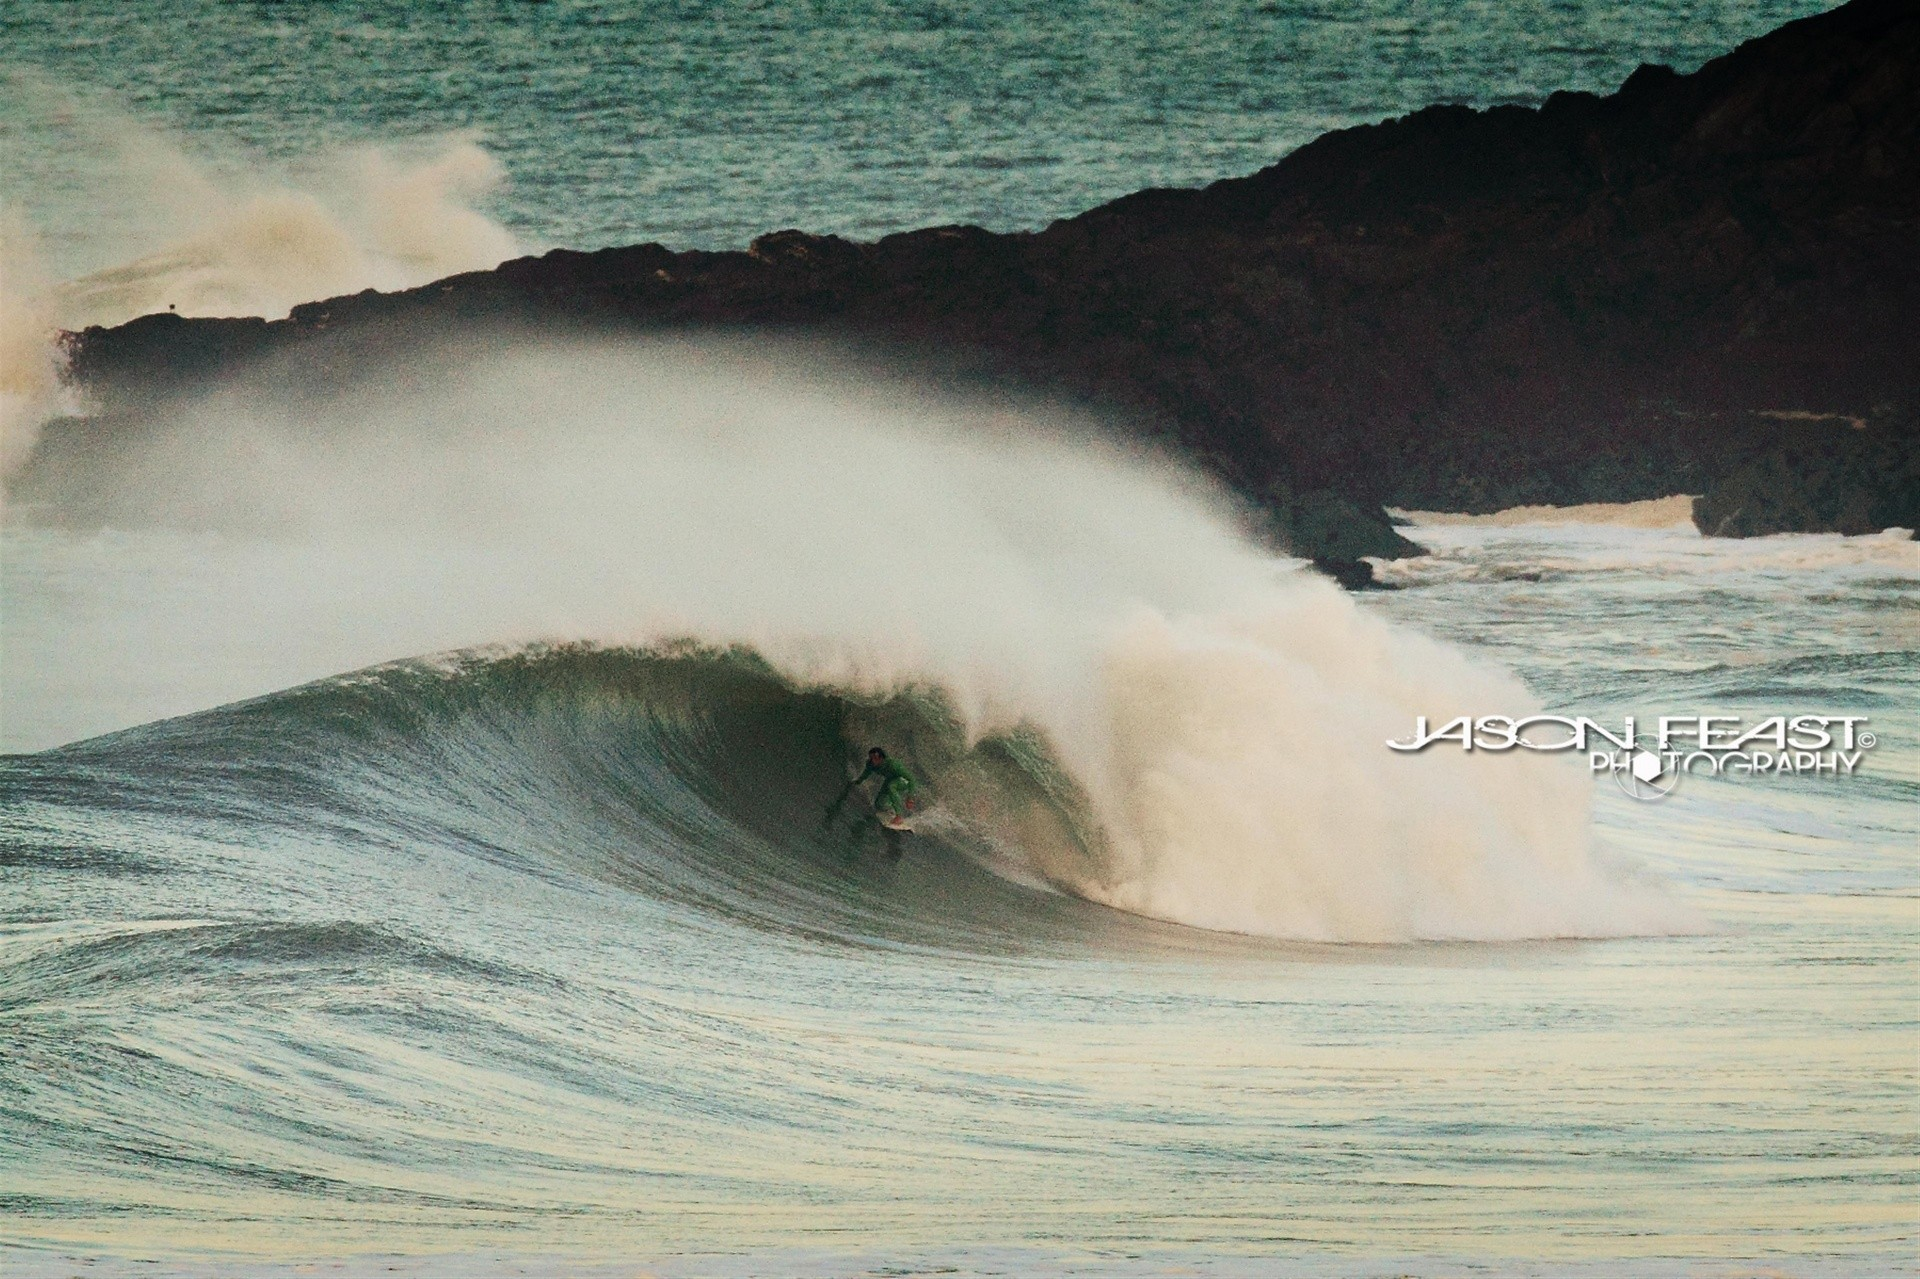 Jason Feast's photo of Newquay - Fistral North